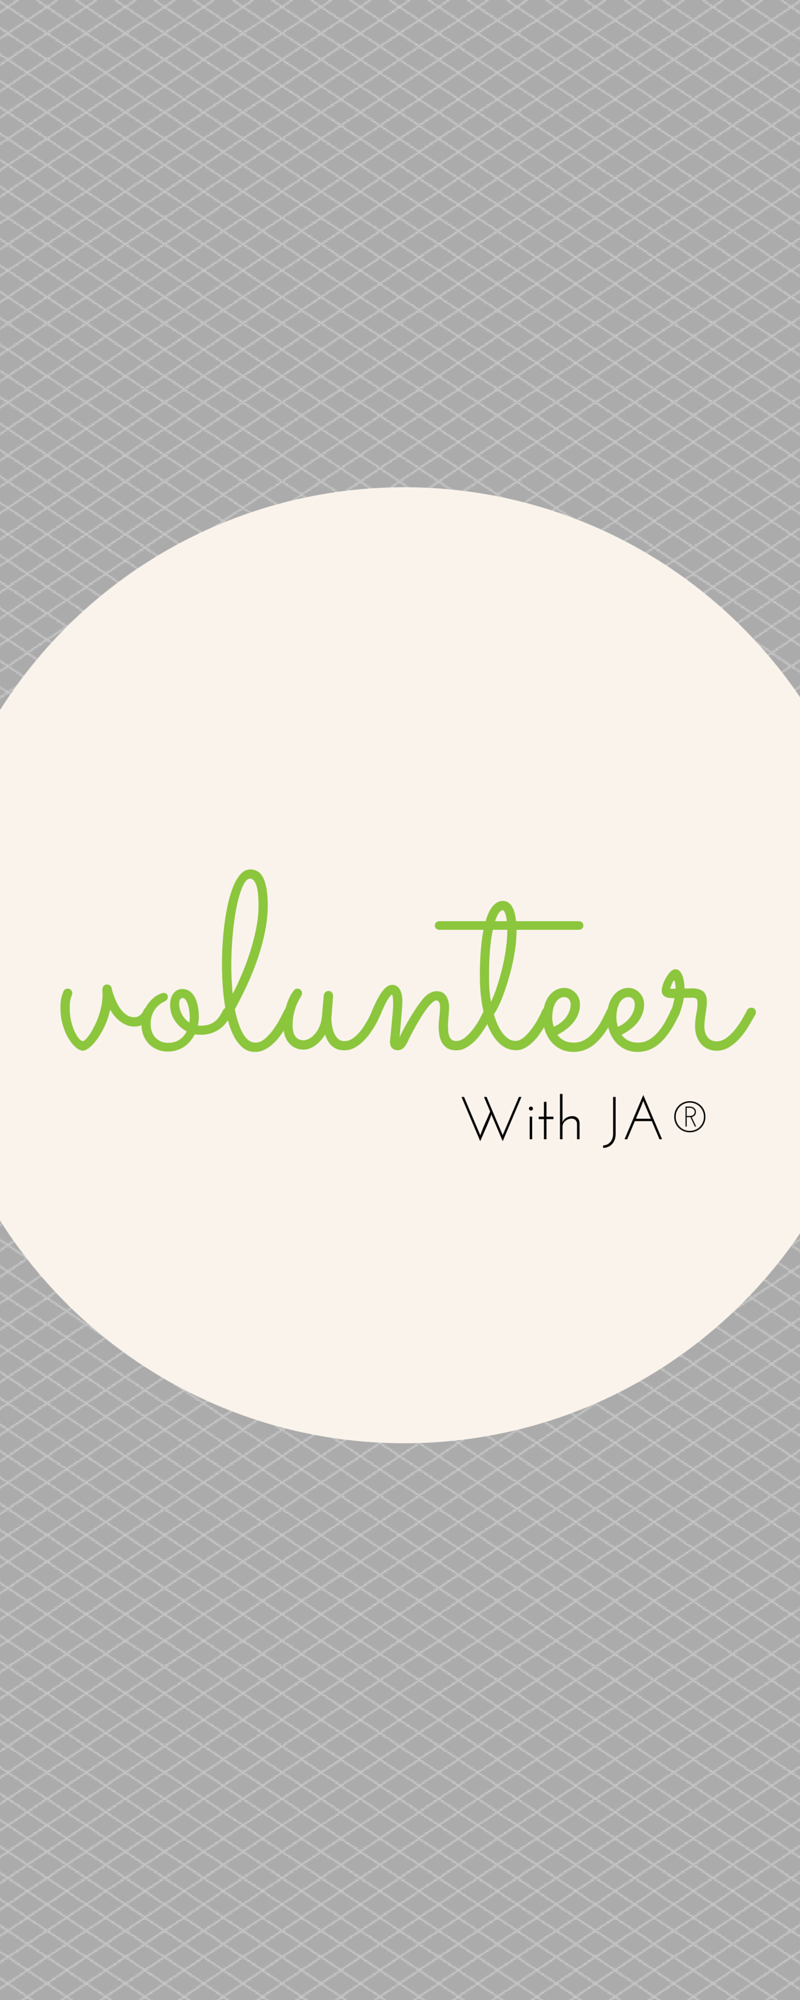 We offer flexible training and volunteer opportunities for groups of all sizes in the classroom, at JA Finance Park®, or on-site at your company.